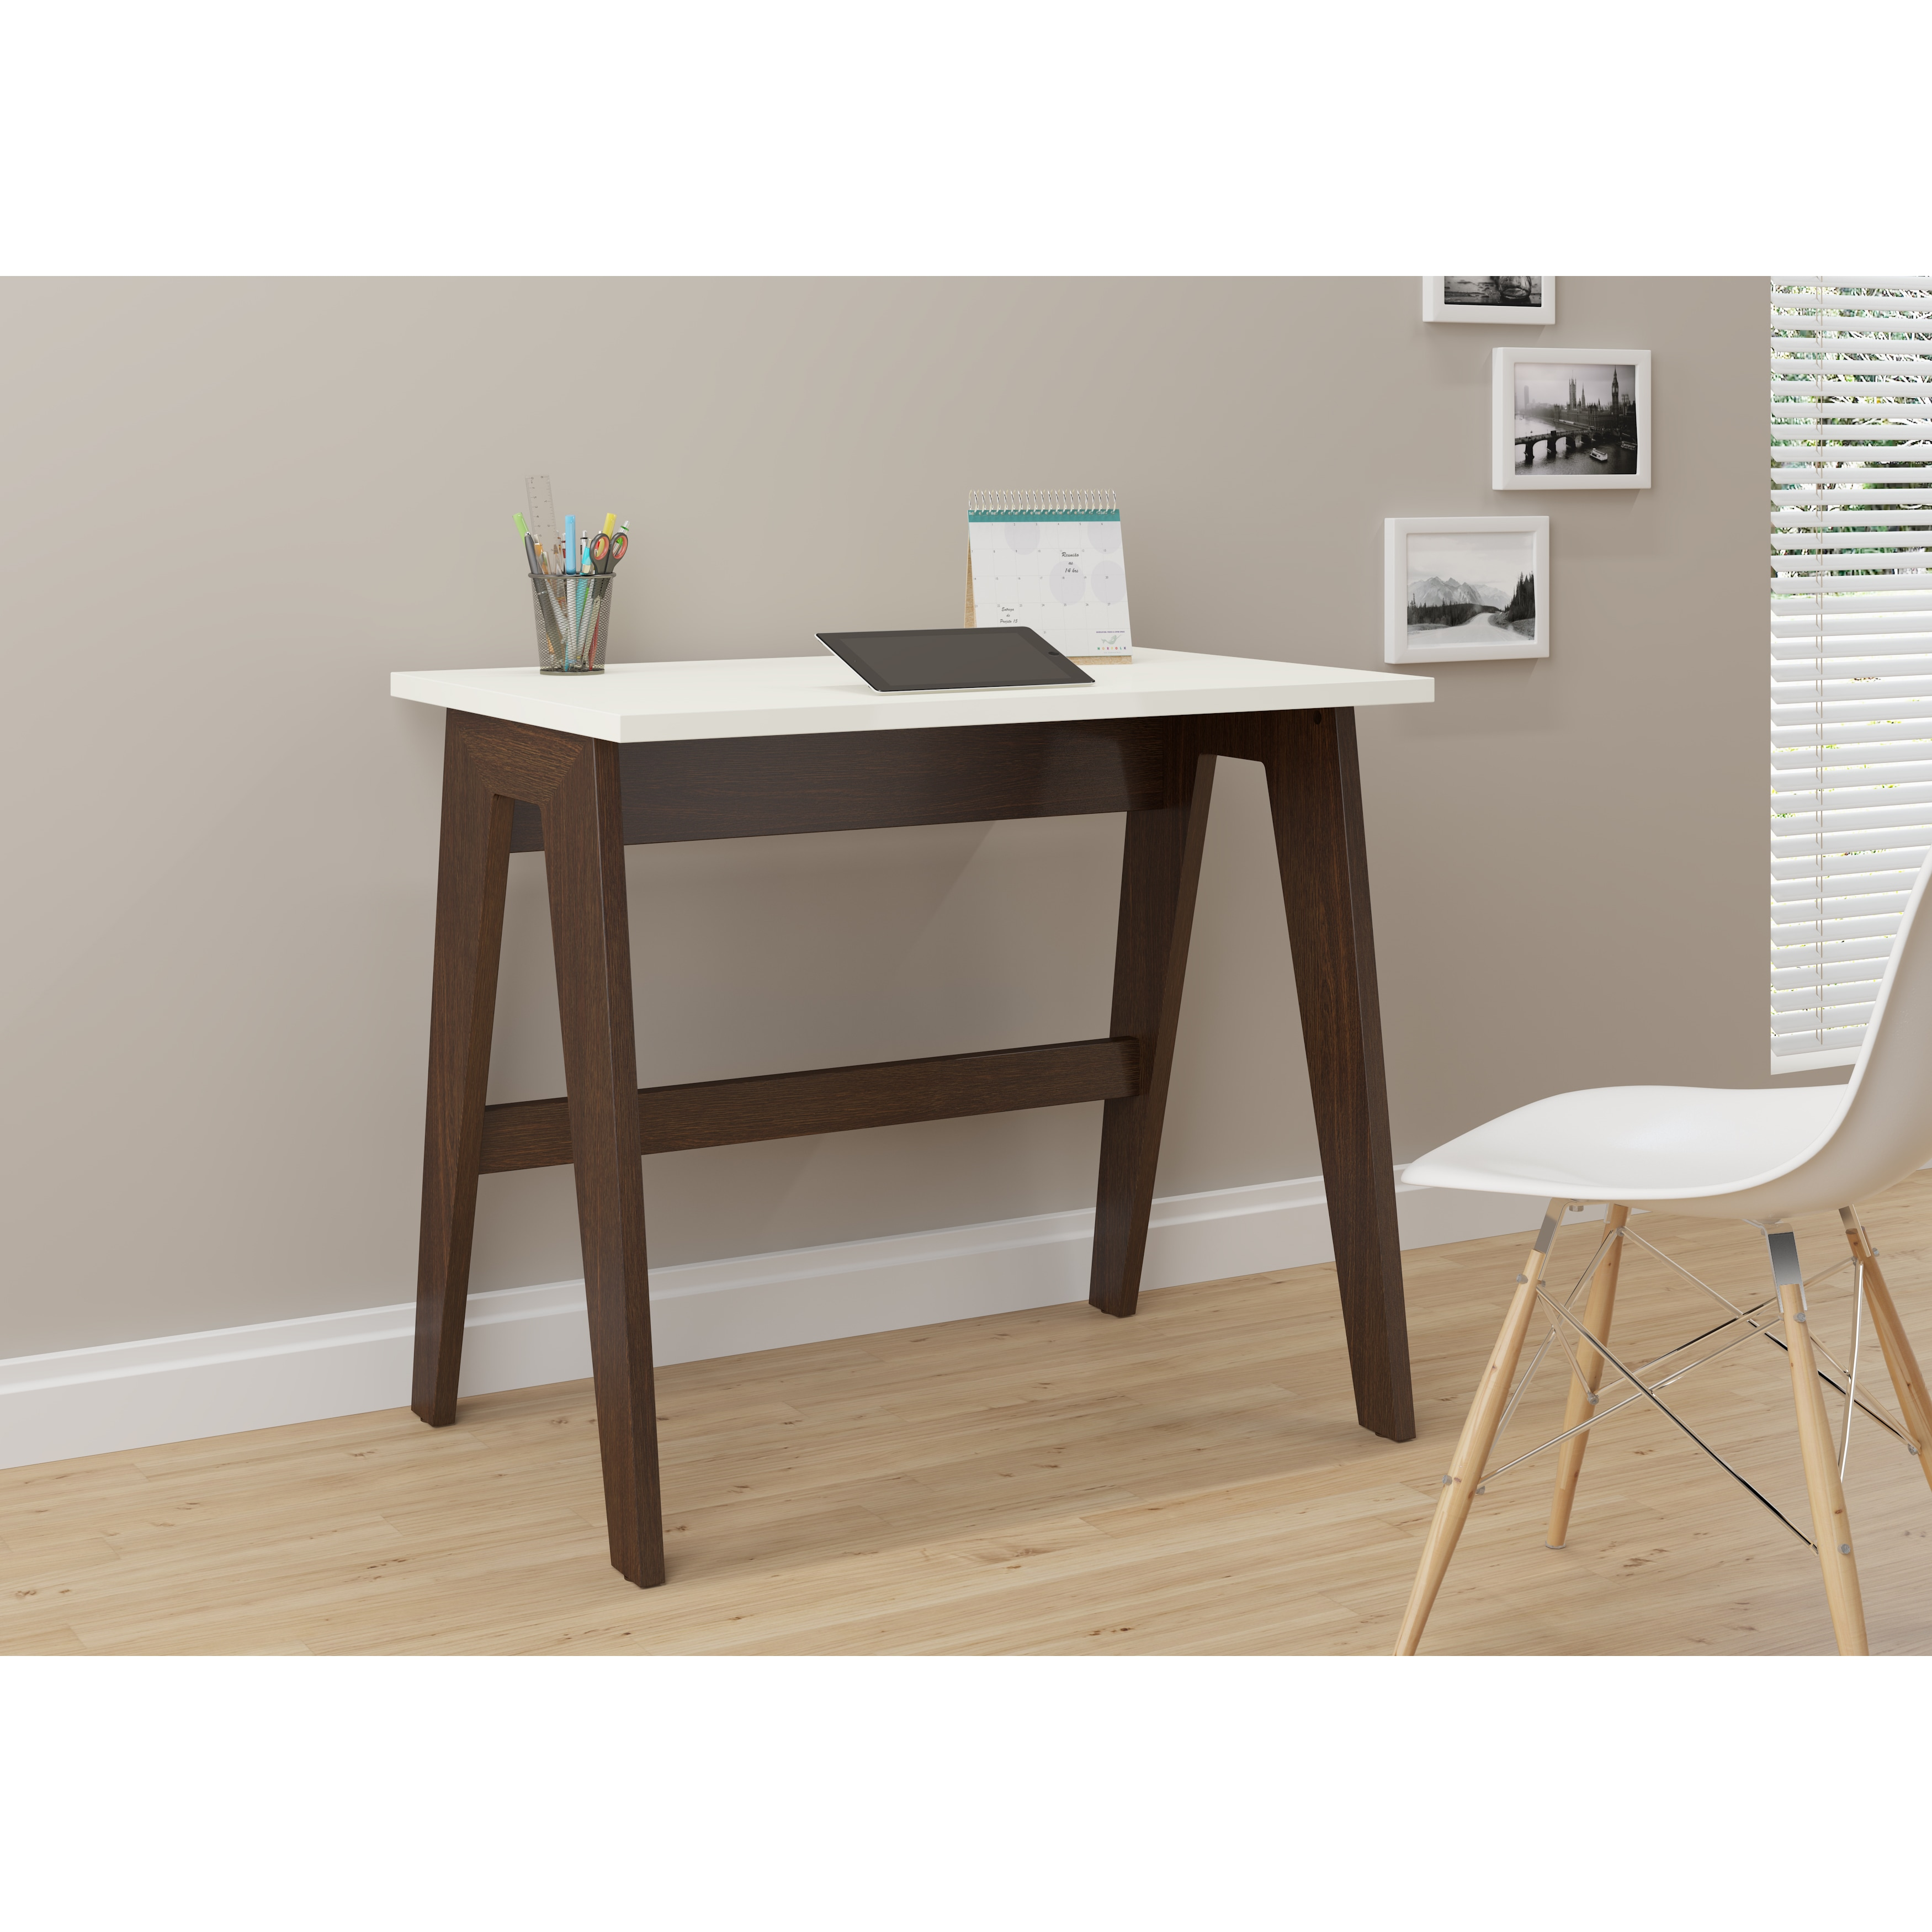 mesh innovation desk discount contemporary chair wooden desks mean furniture office home cabinets top